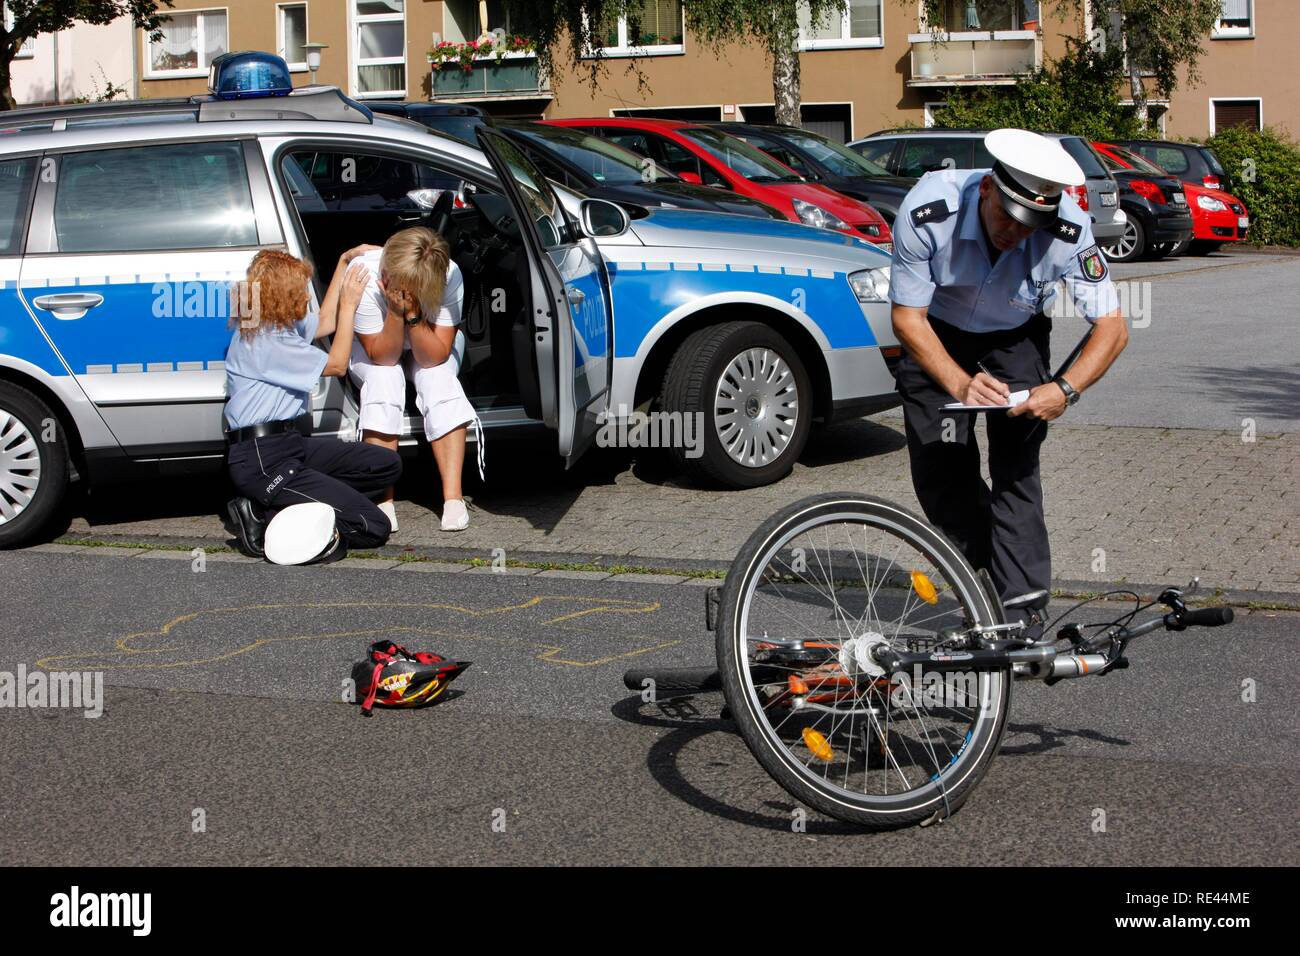 Police officers attend to the witness of a bicycle accident, victim support, emergency counselling, re-enactment - Stock Image